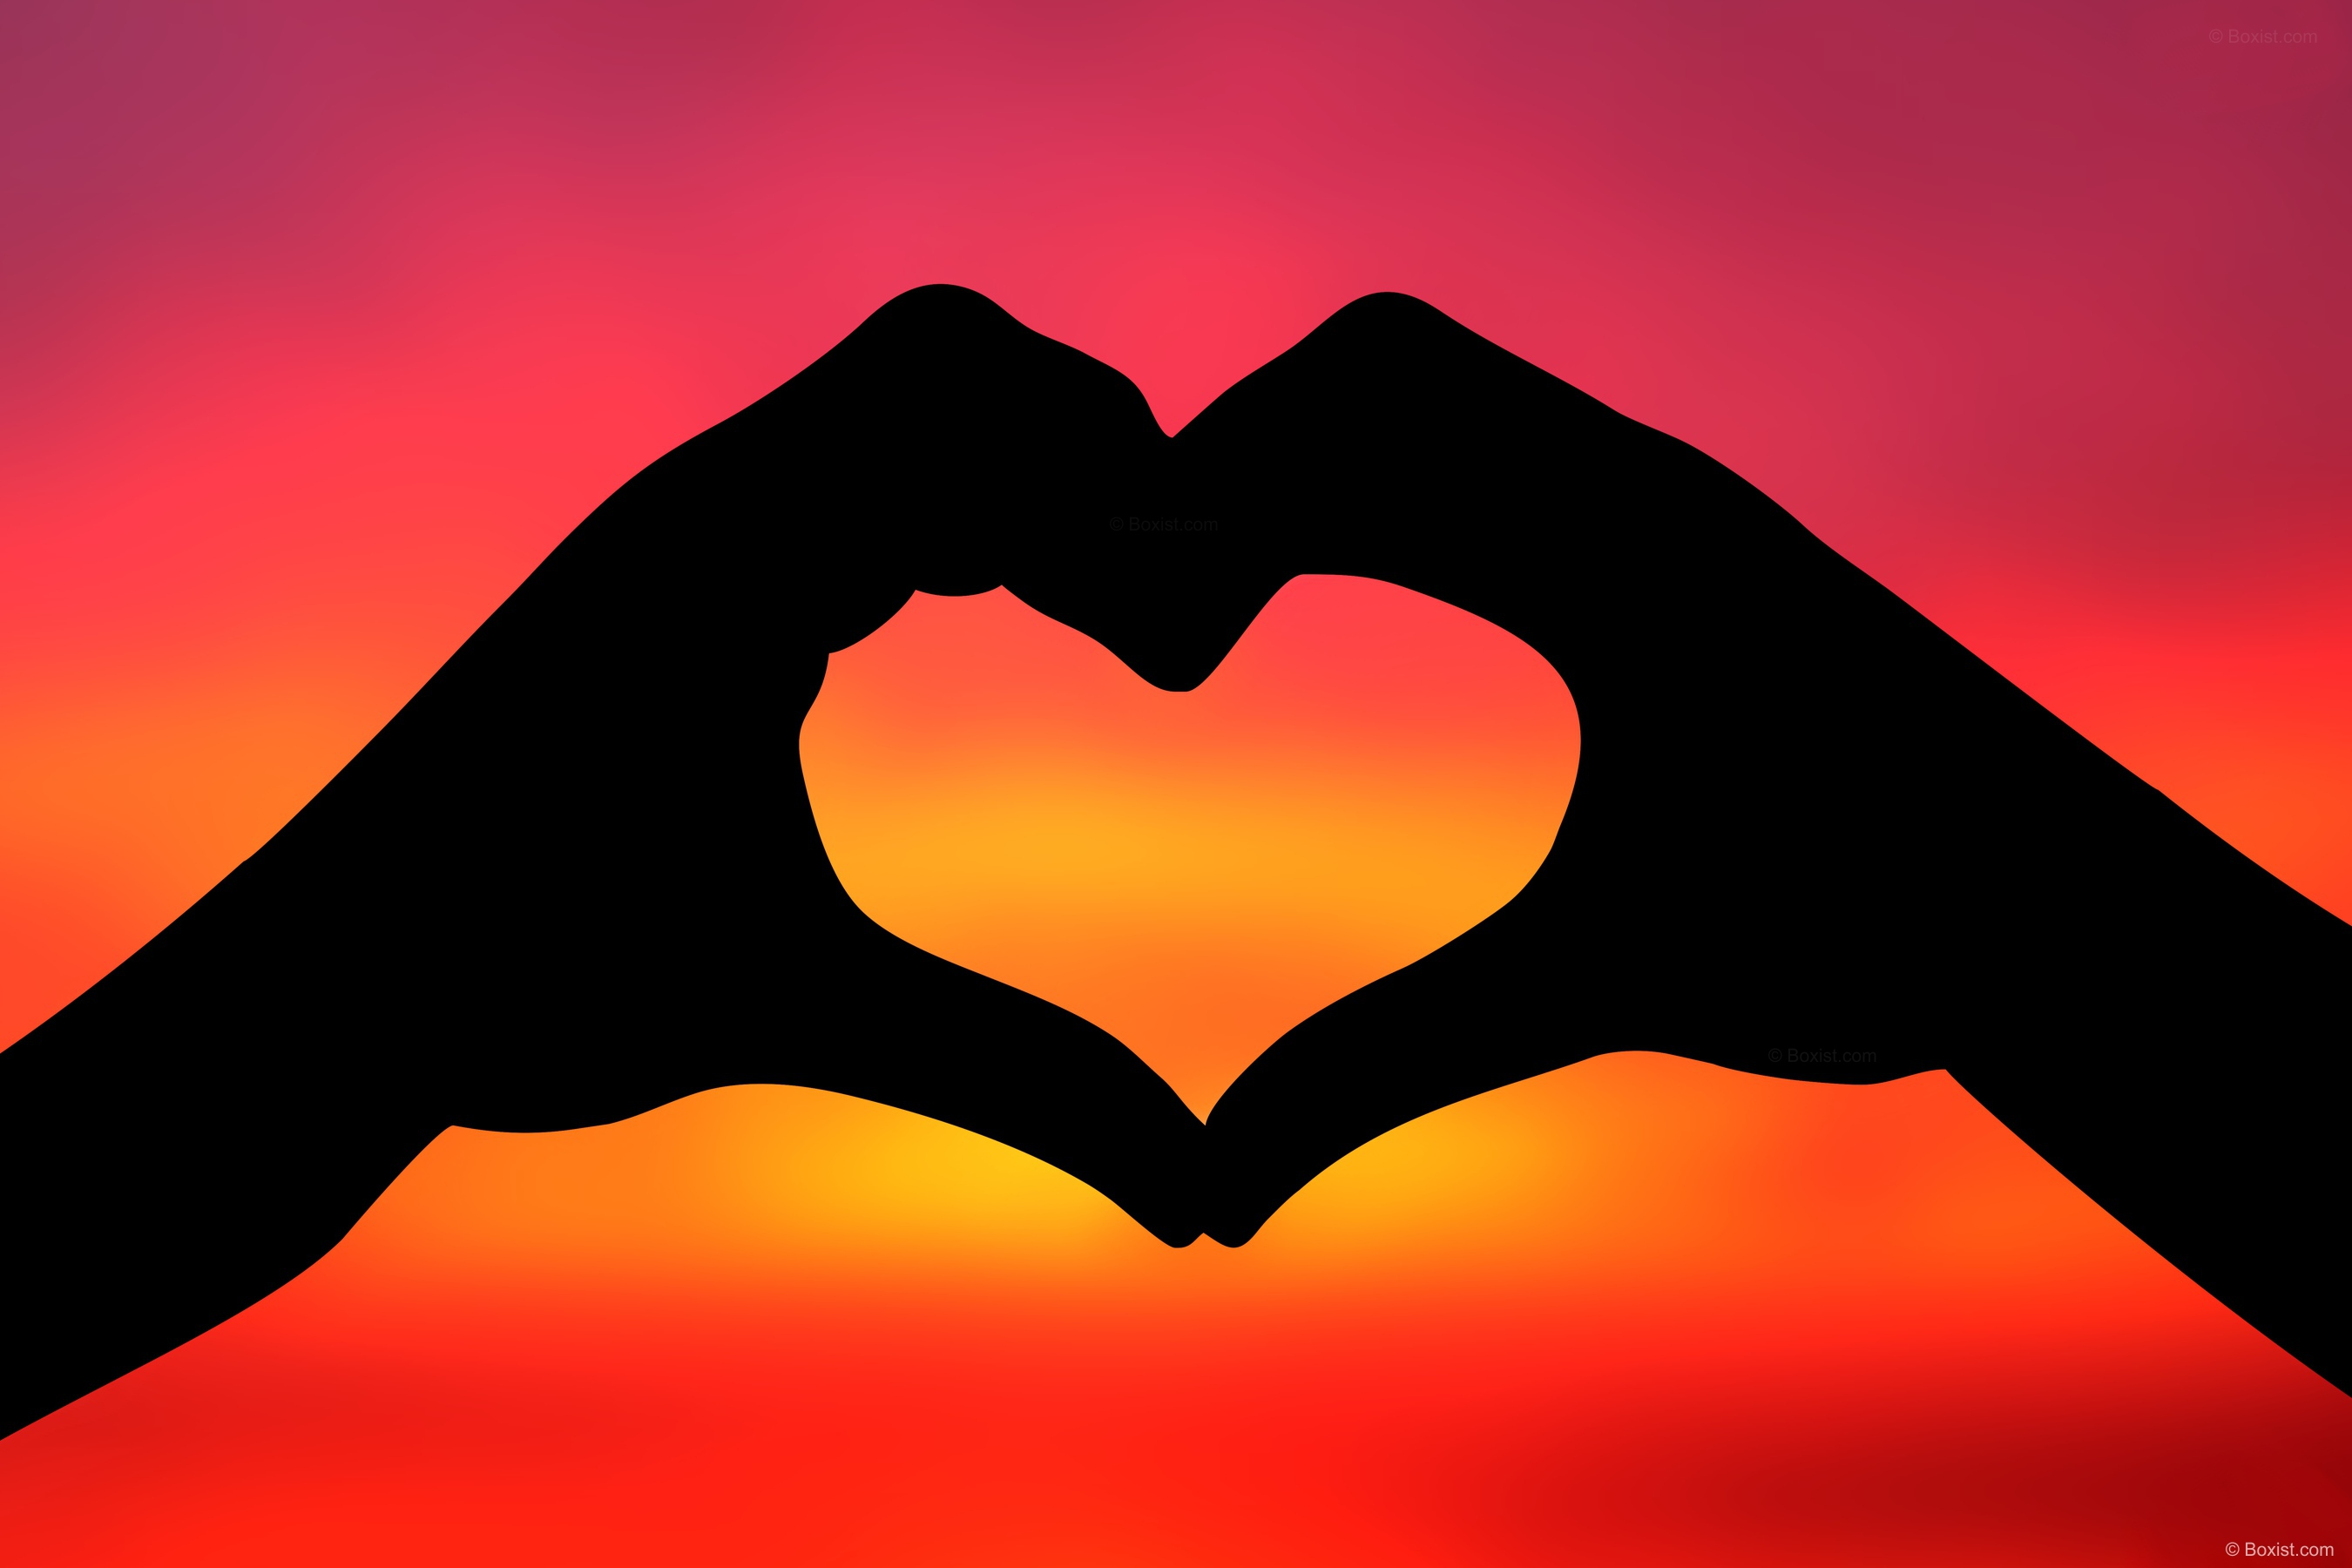 Silhouette Of Love Heart Shape With Two Hands At Sunset Stock Photo Our Photography Portfolio